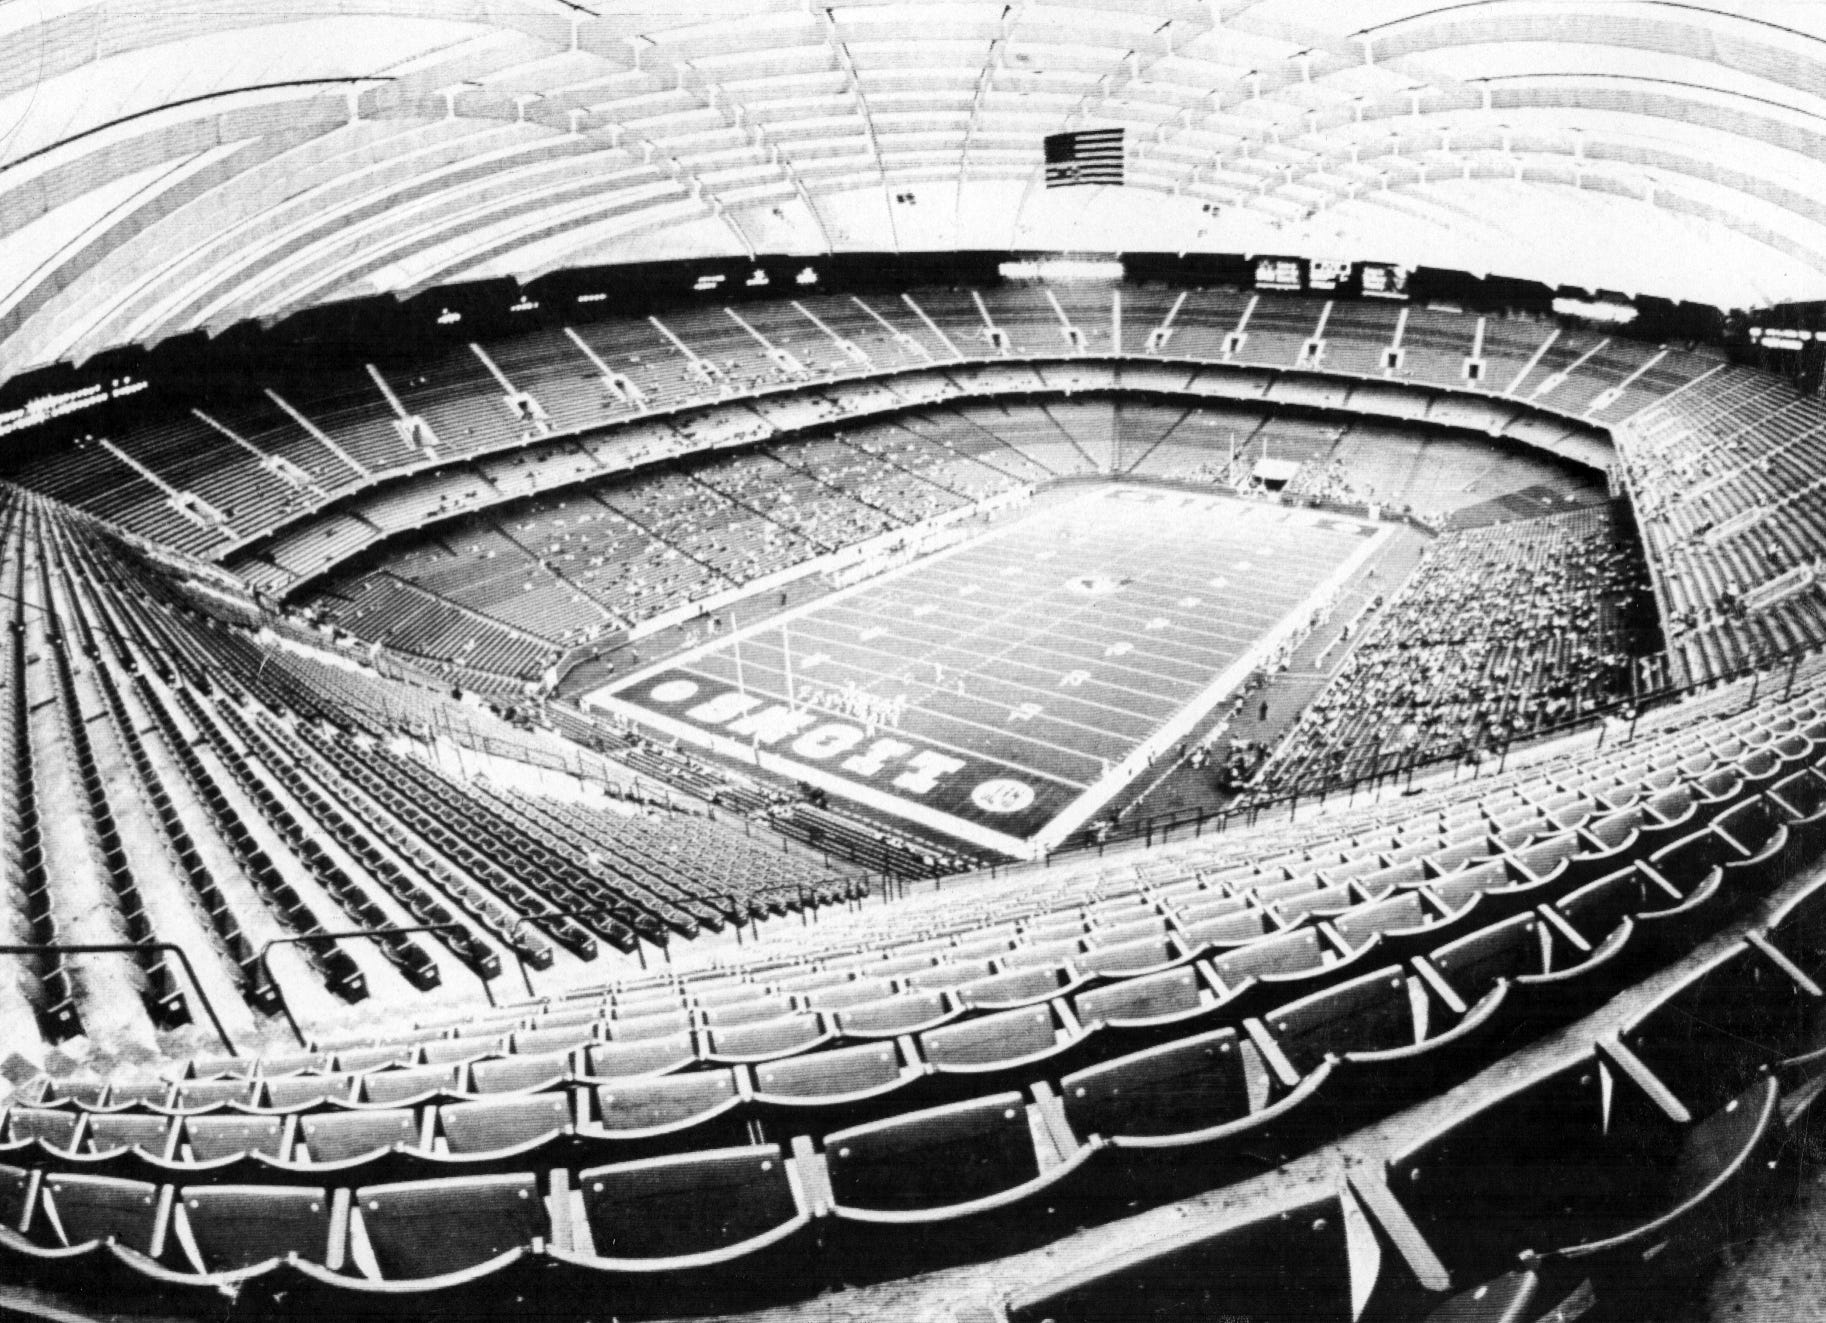 There were plenty of empty seats at the Detroit Lions'